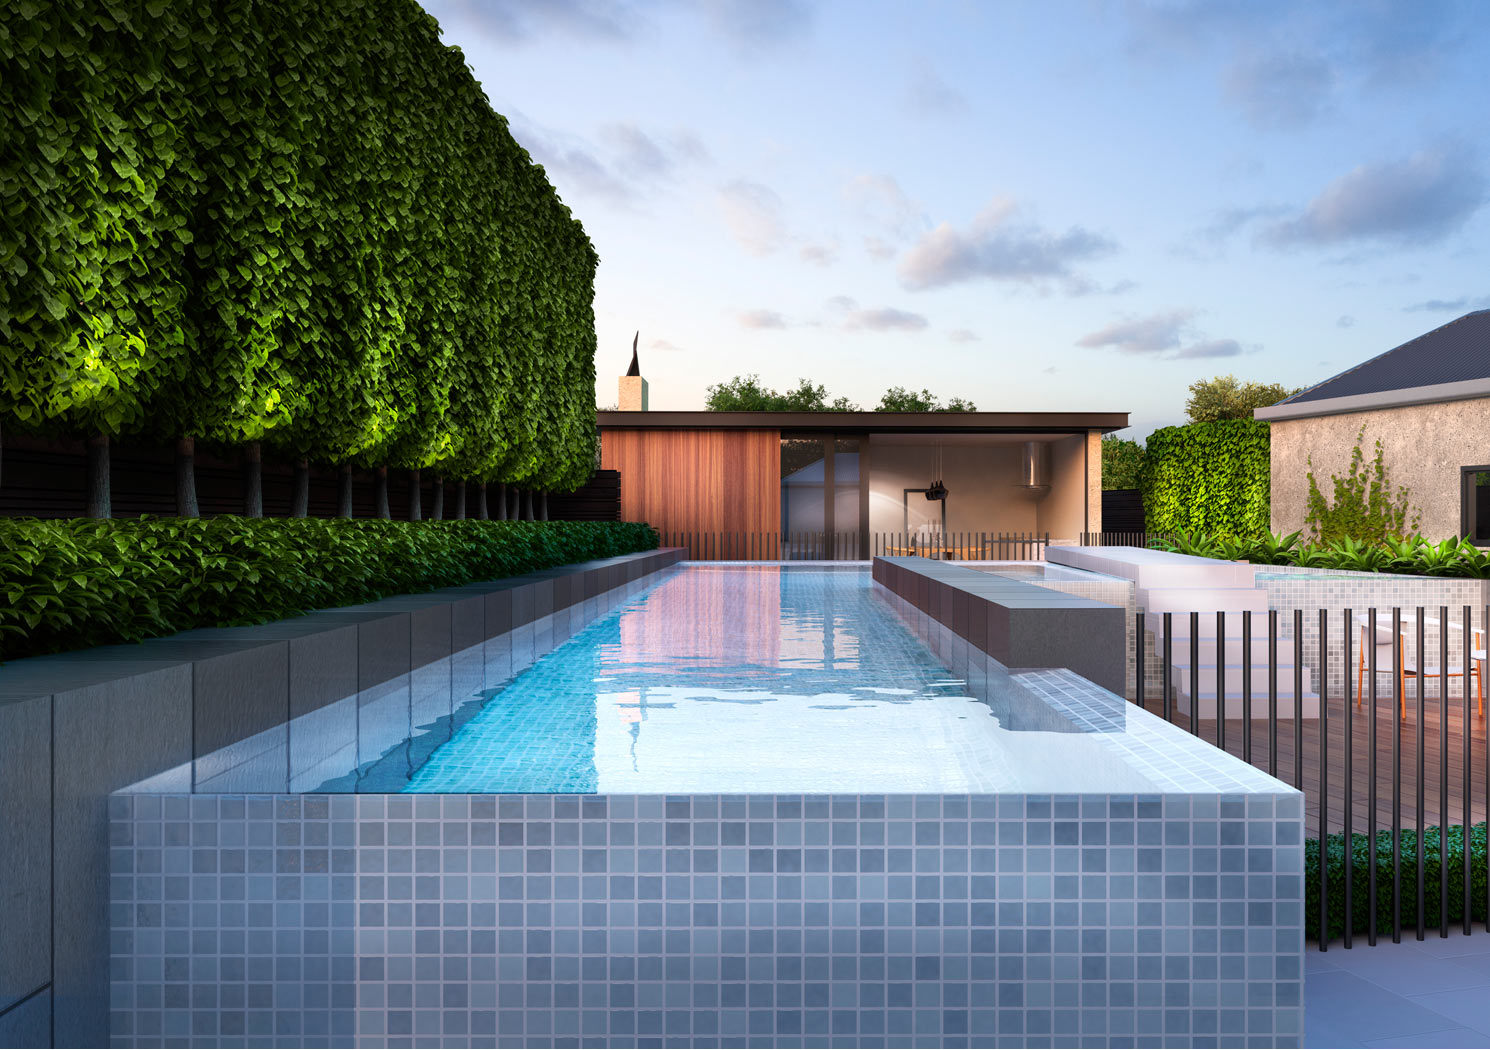 Landscape garden designer melbourne nathan burkett design for Garden design channel 4